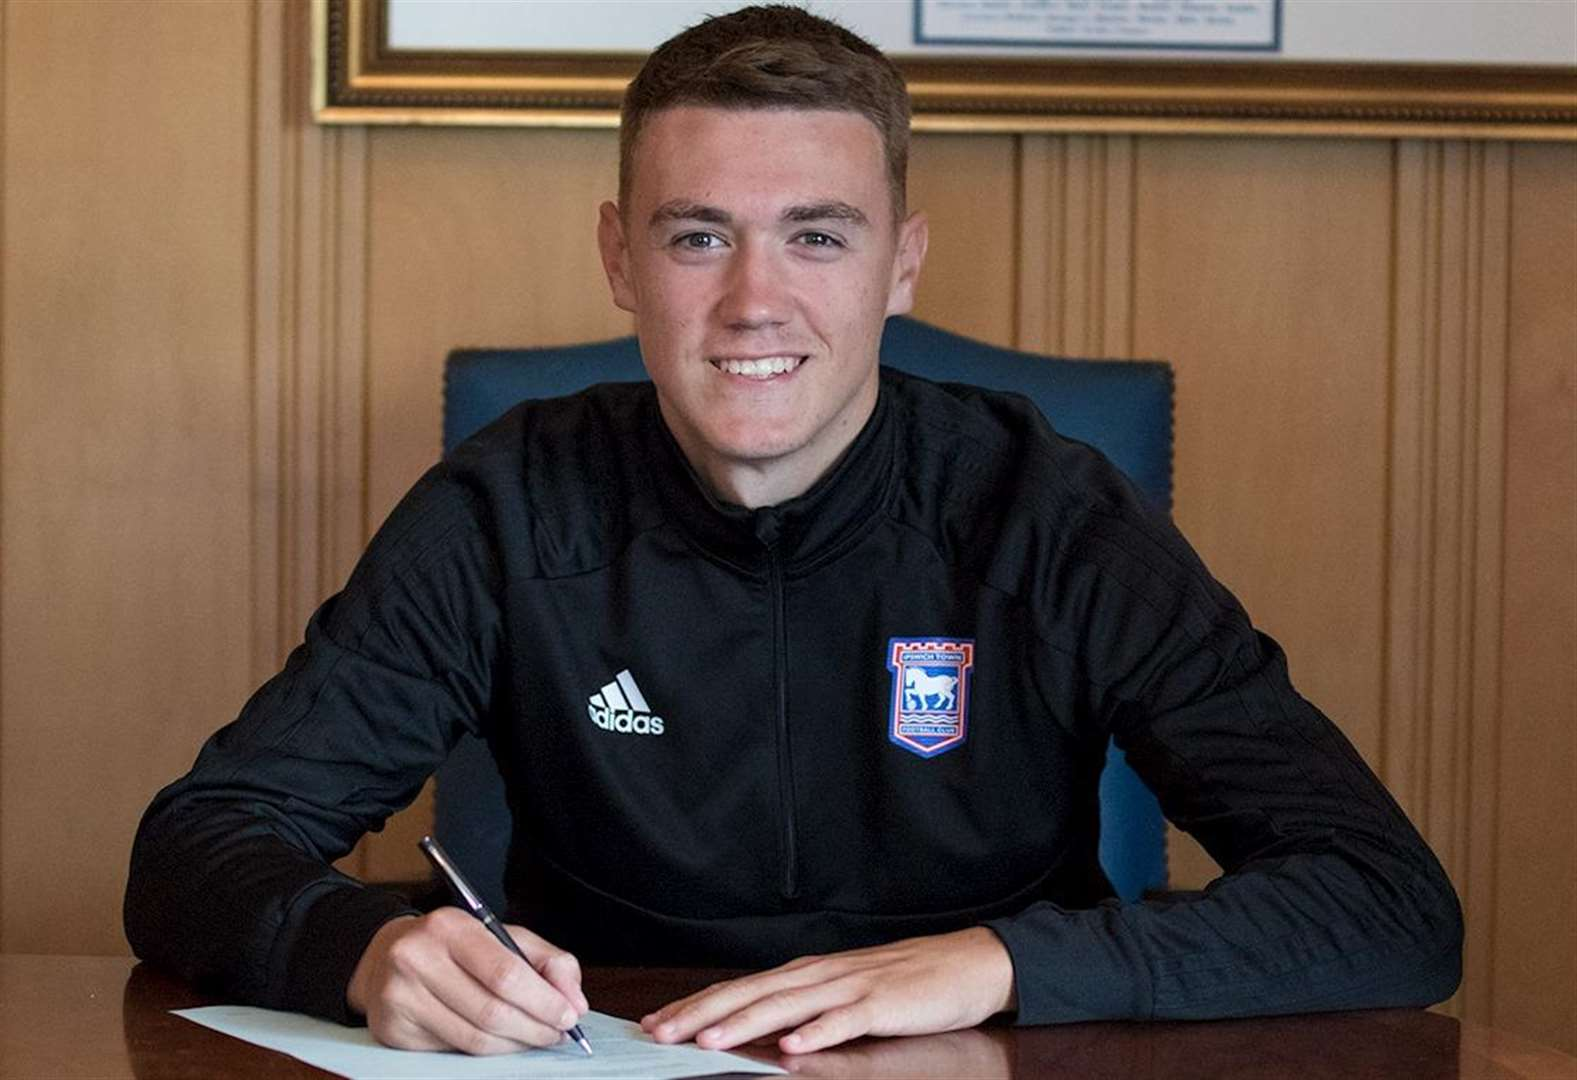 Bury boy Lankester signs pro deal at Ipswich Town